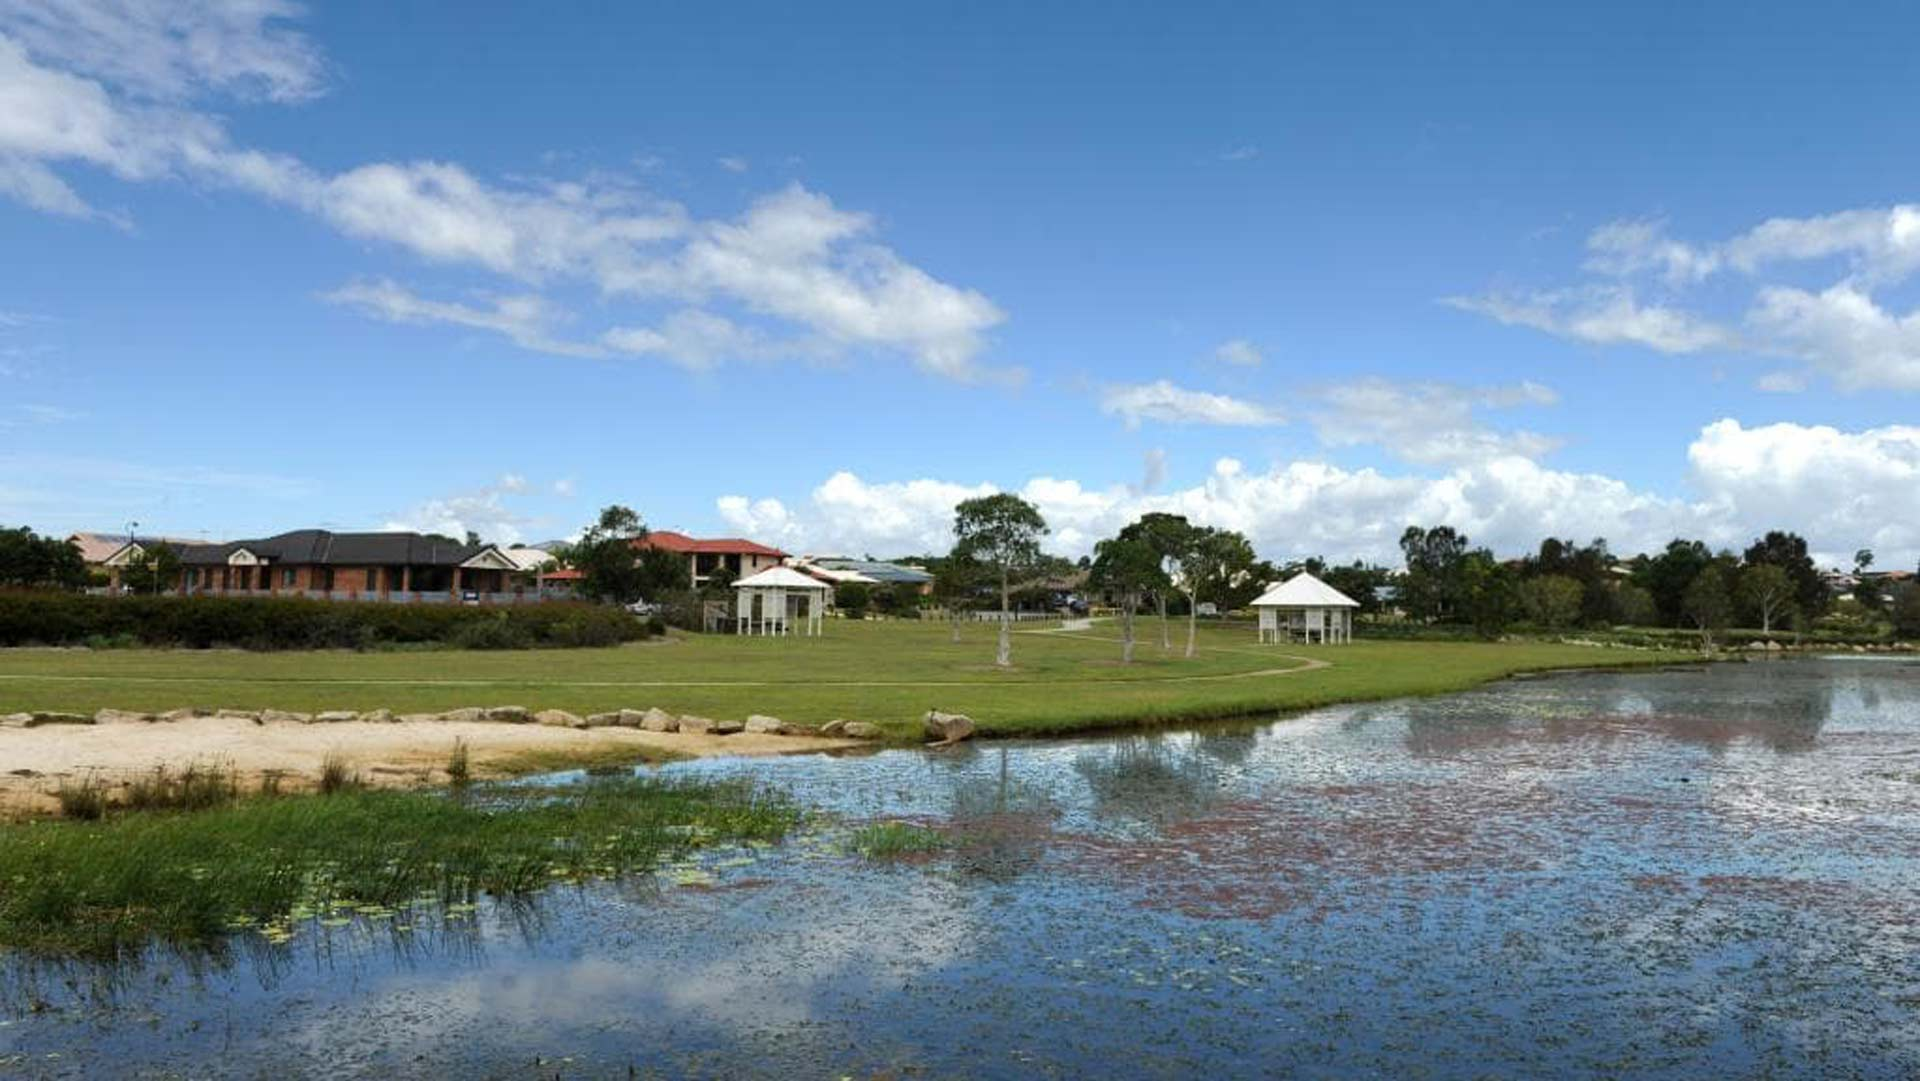 Development approval could double Narangba's population